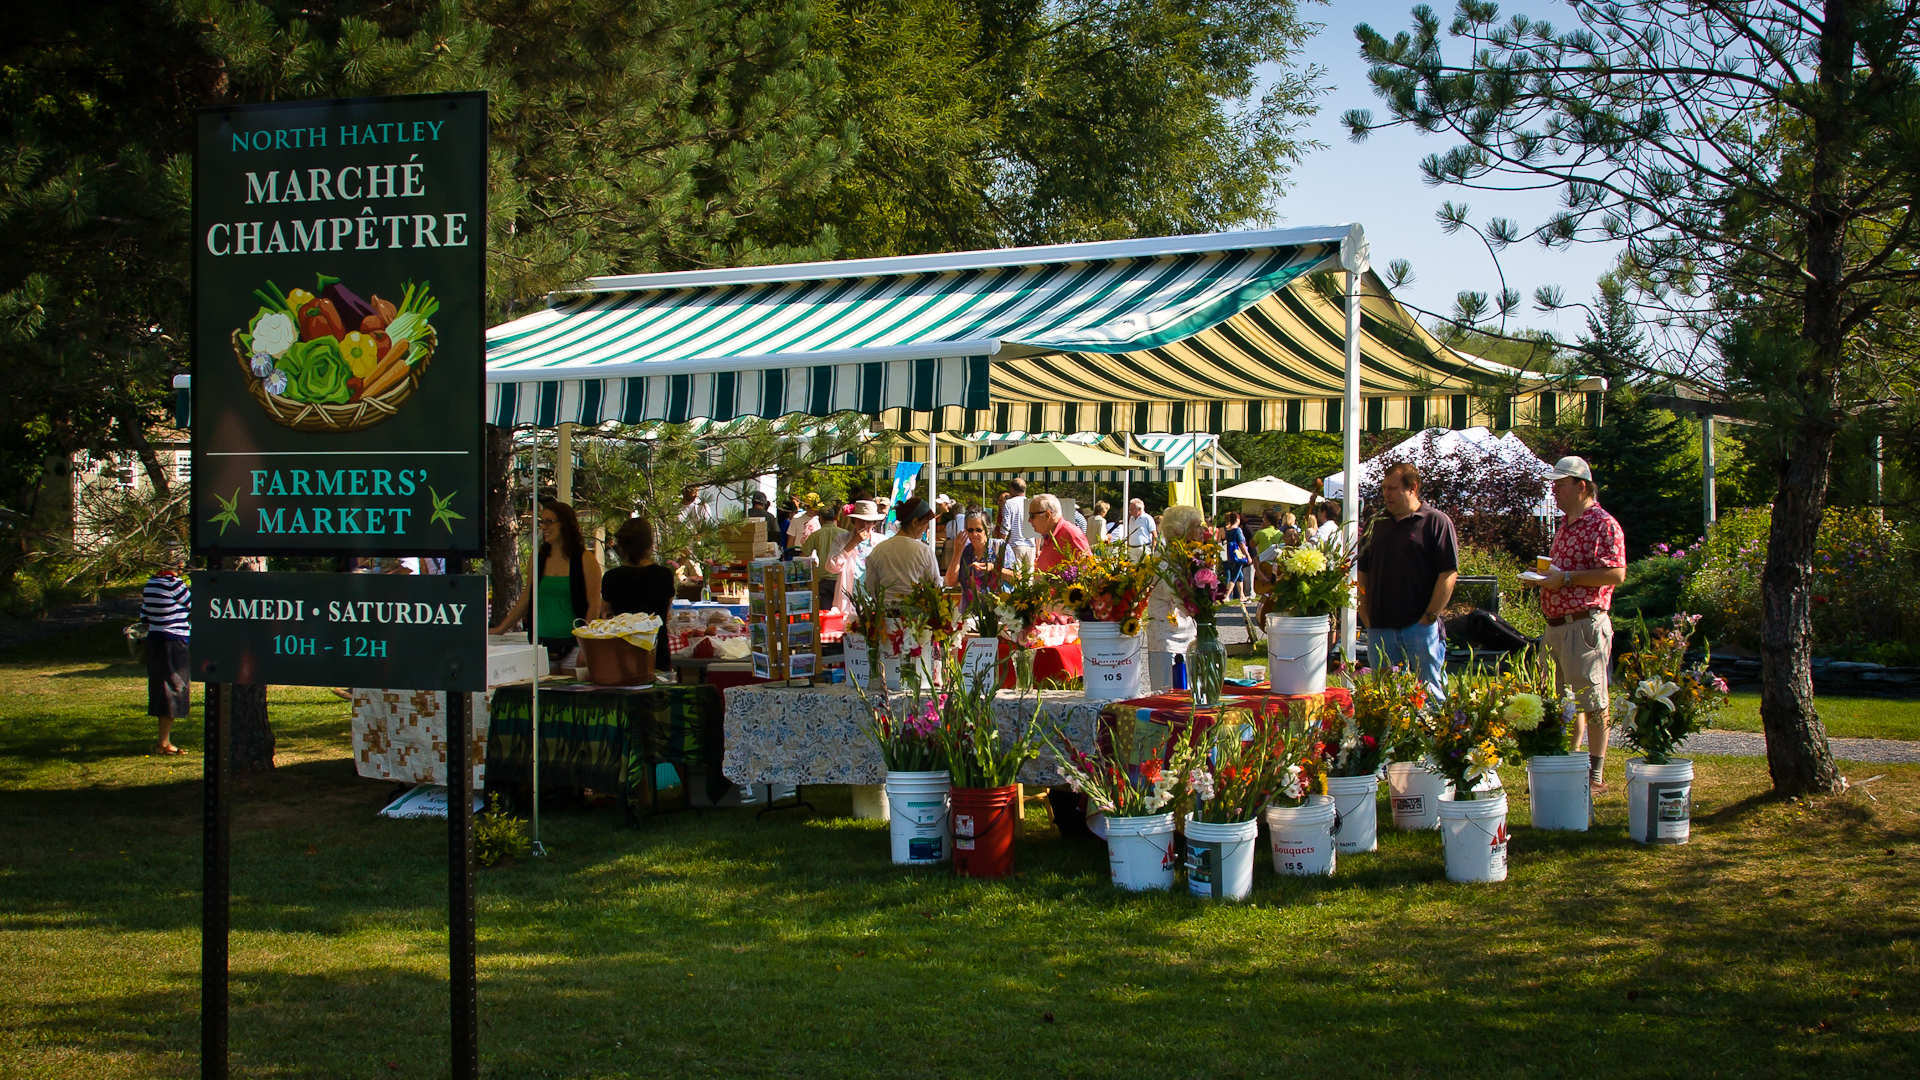 The North Hatley Farmers' Market Opens Next Saturday